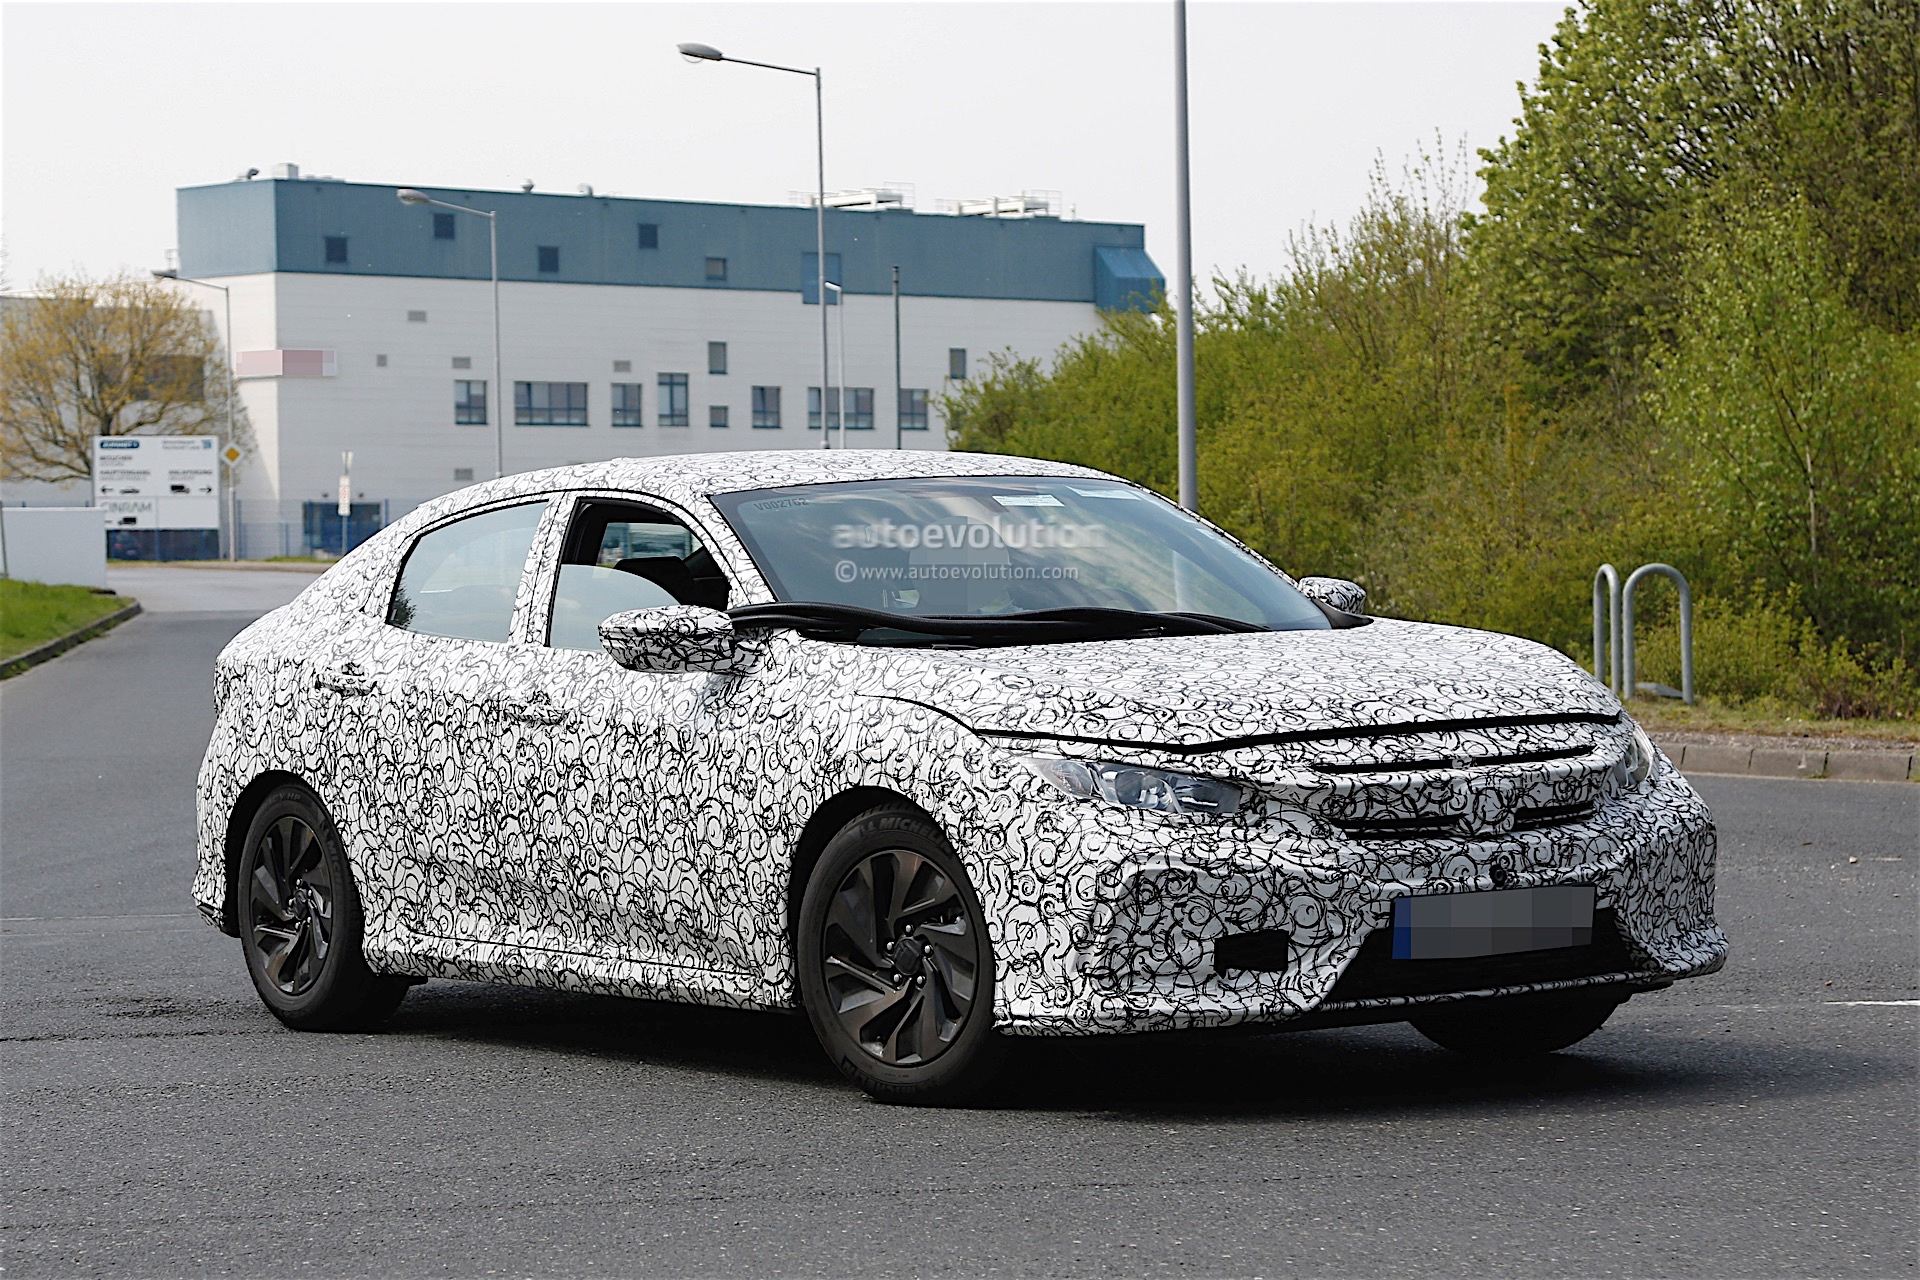 Just like the previous Civic X prototypes spotted until now, the Honda ...